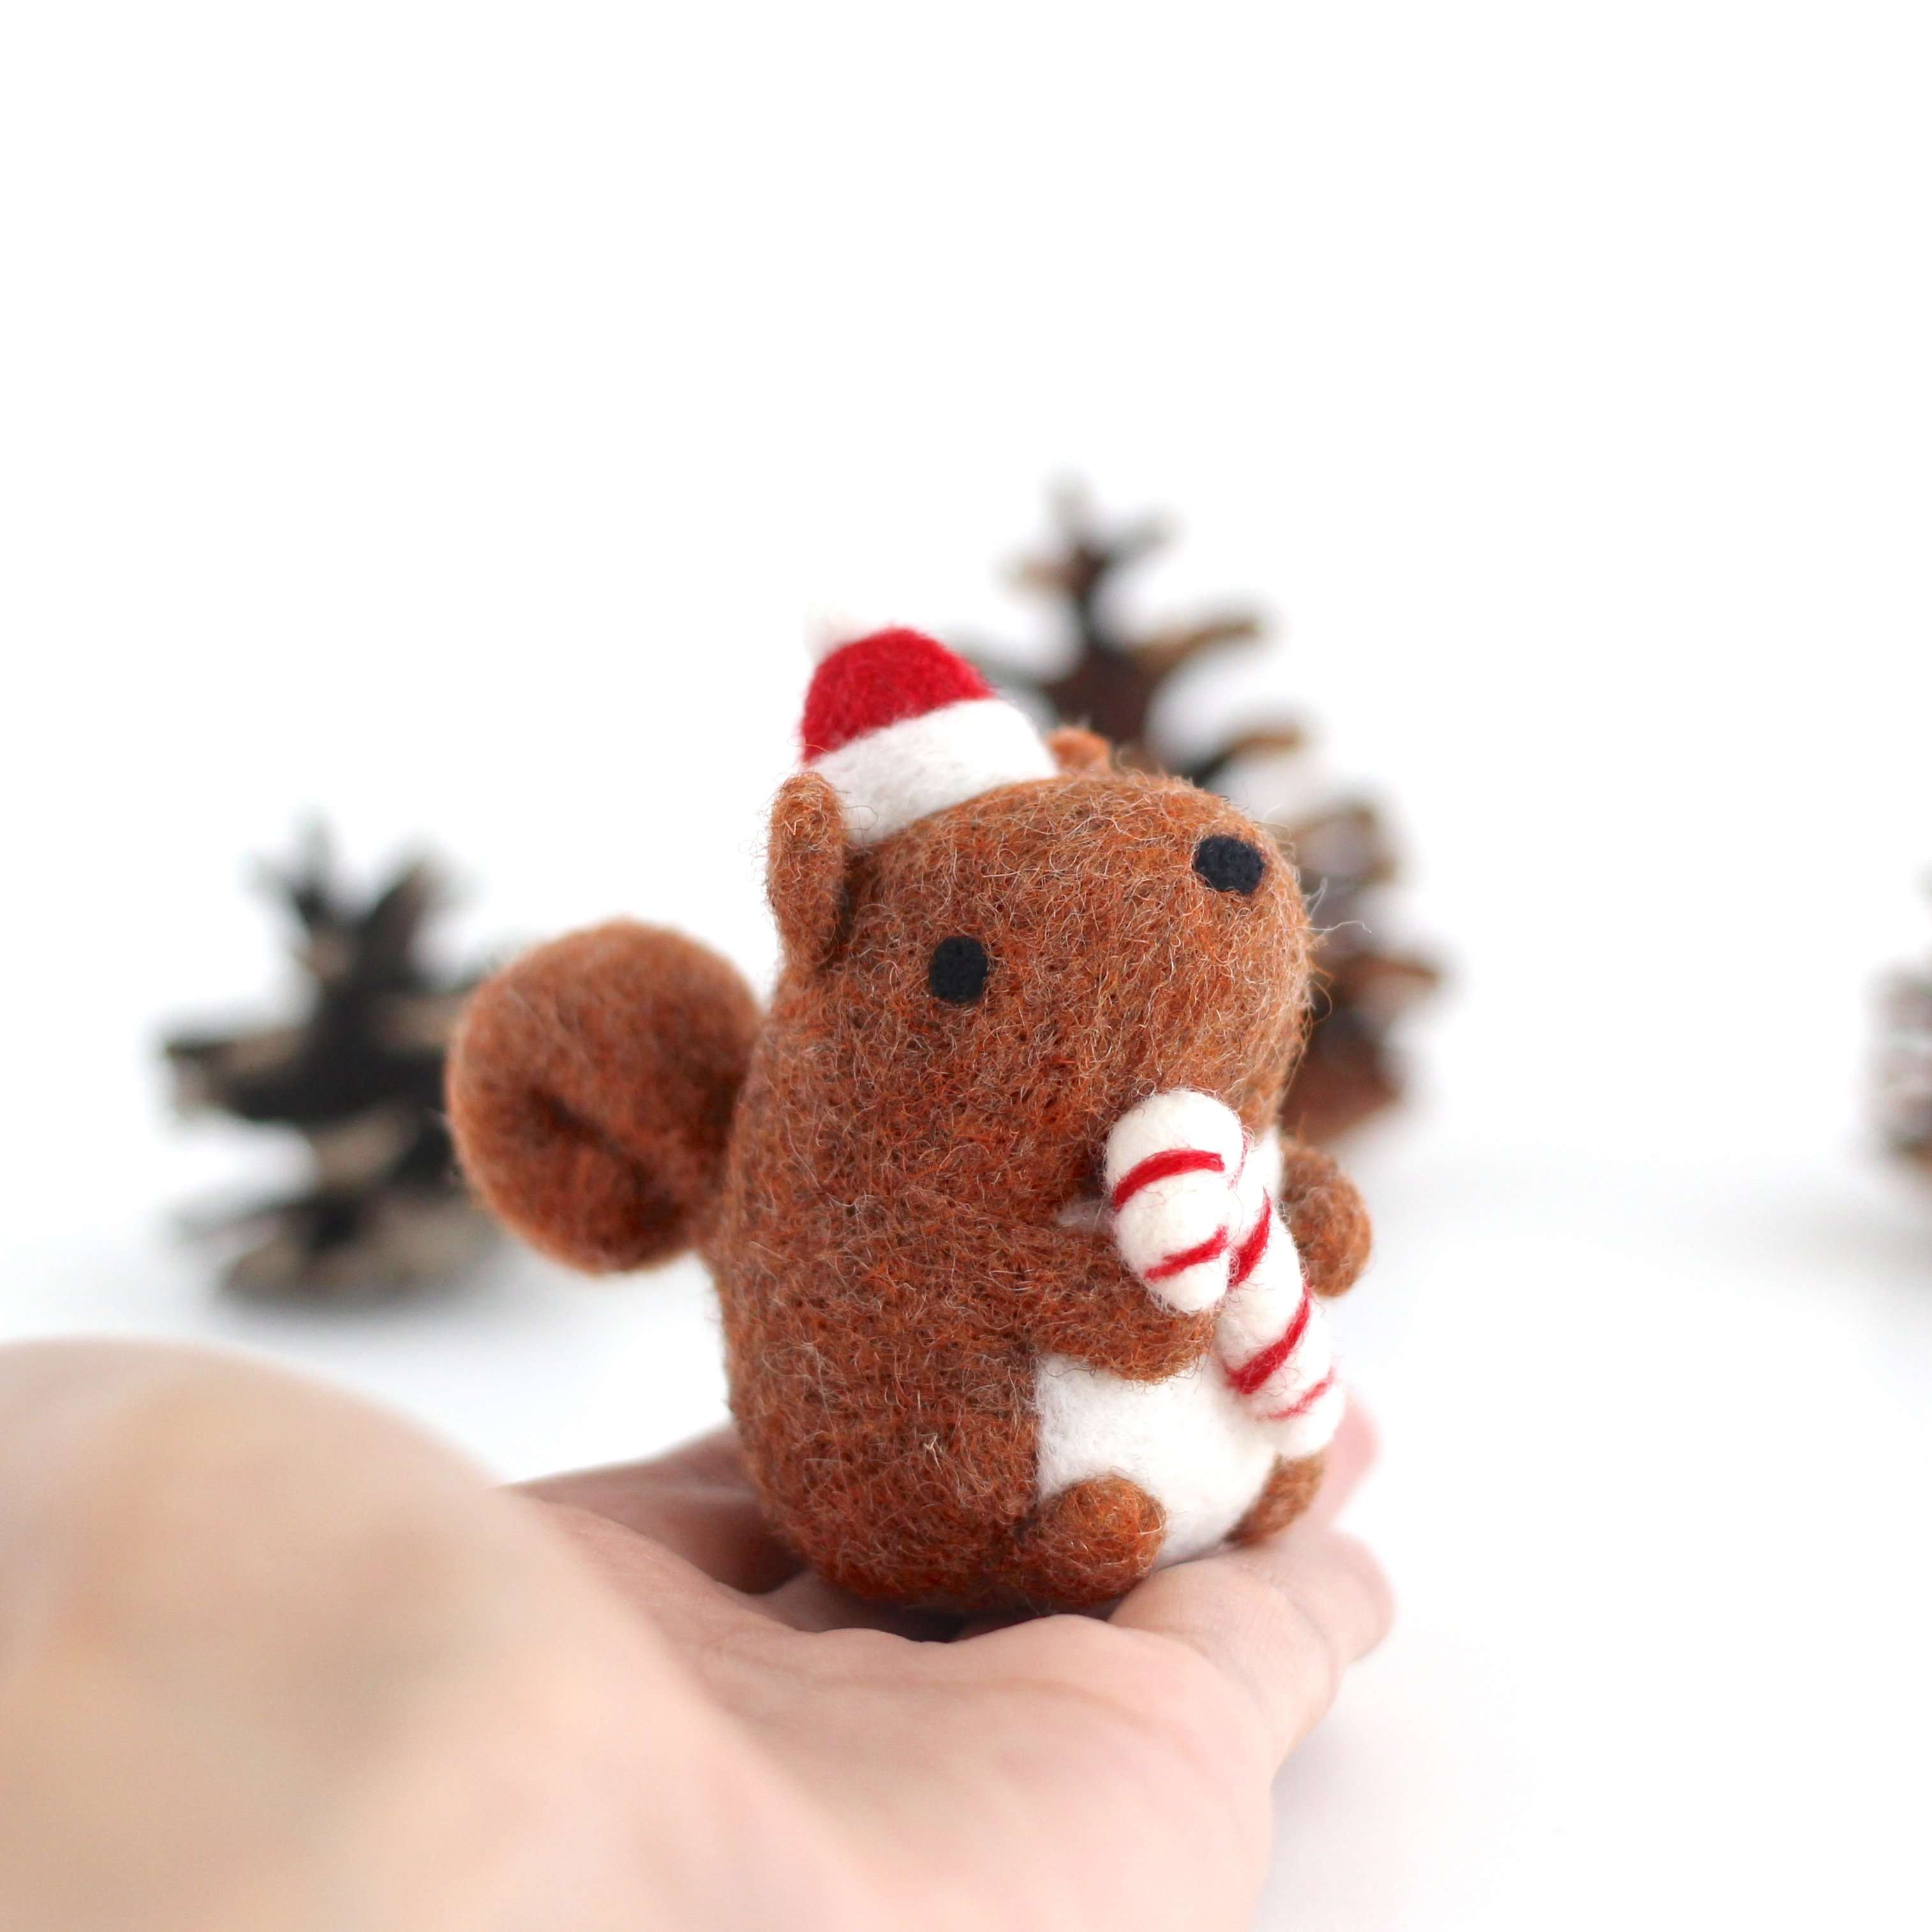 Needle Felted Squirrel Holding Candy Cane by Wild Whimsy Woolies